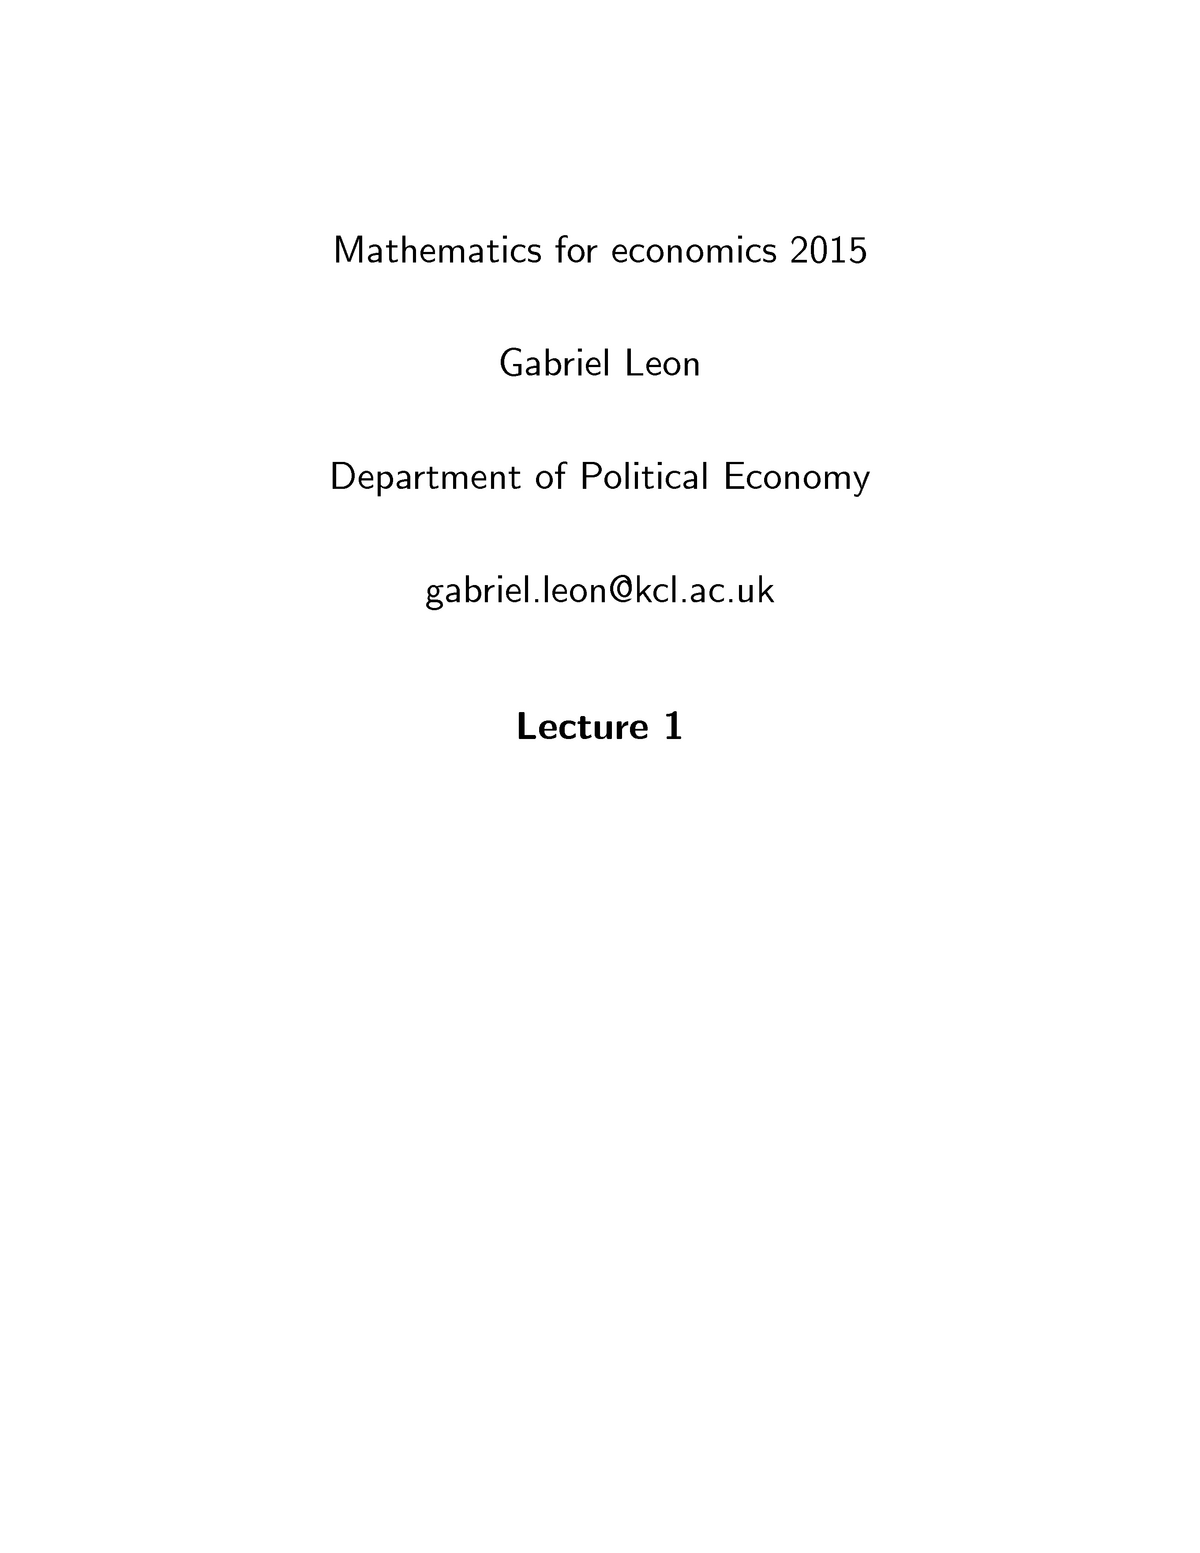 Mathematics for Economics - Lecture notes - Lecture 1 - StuDocu